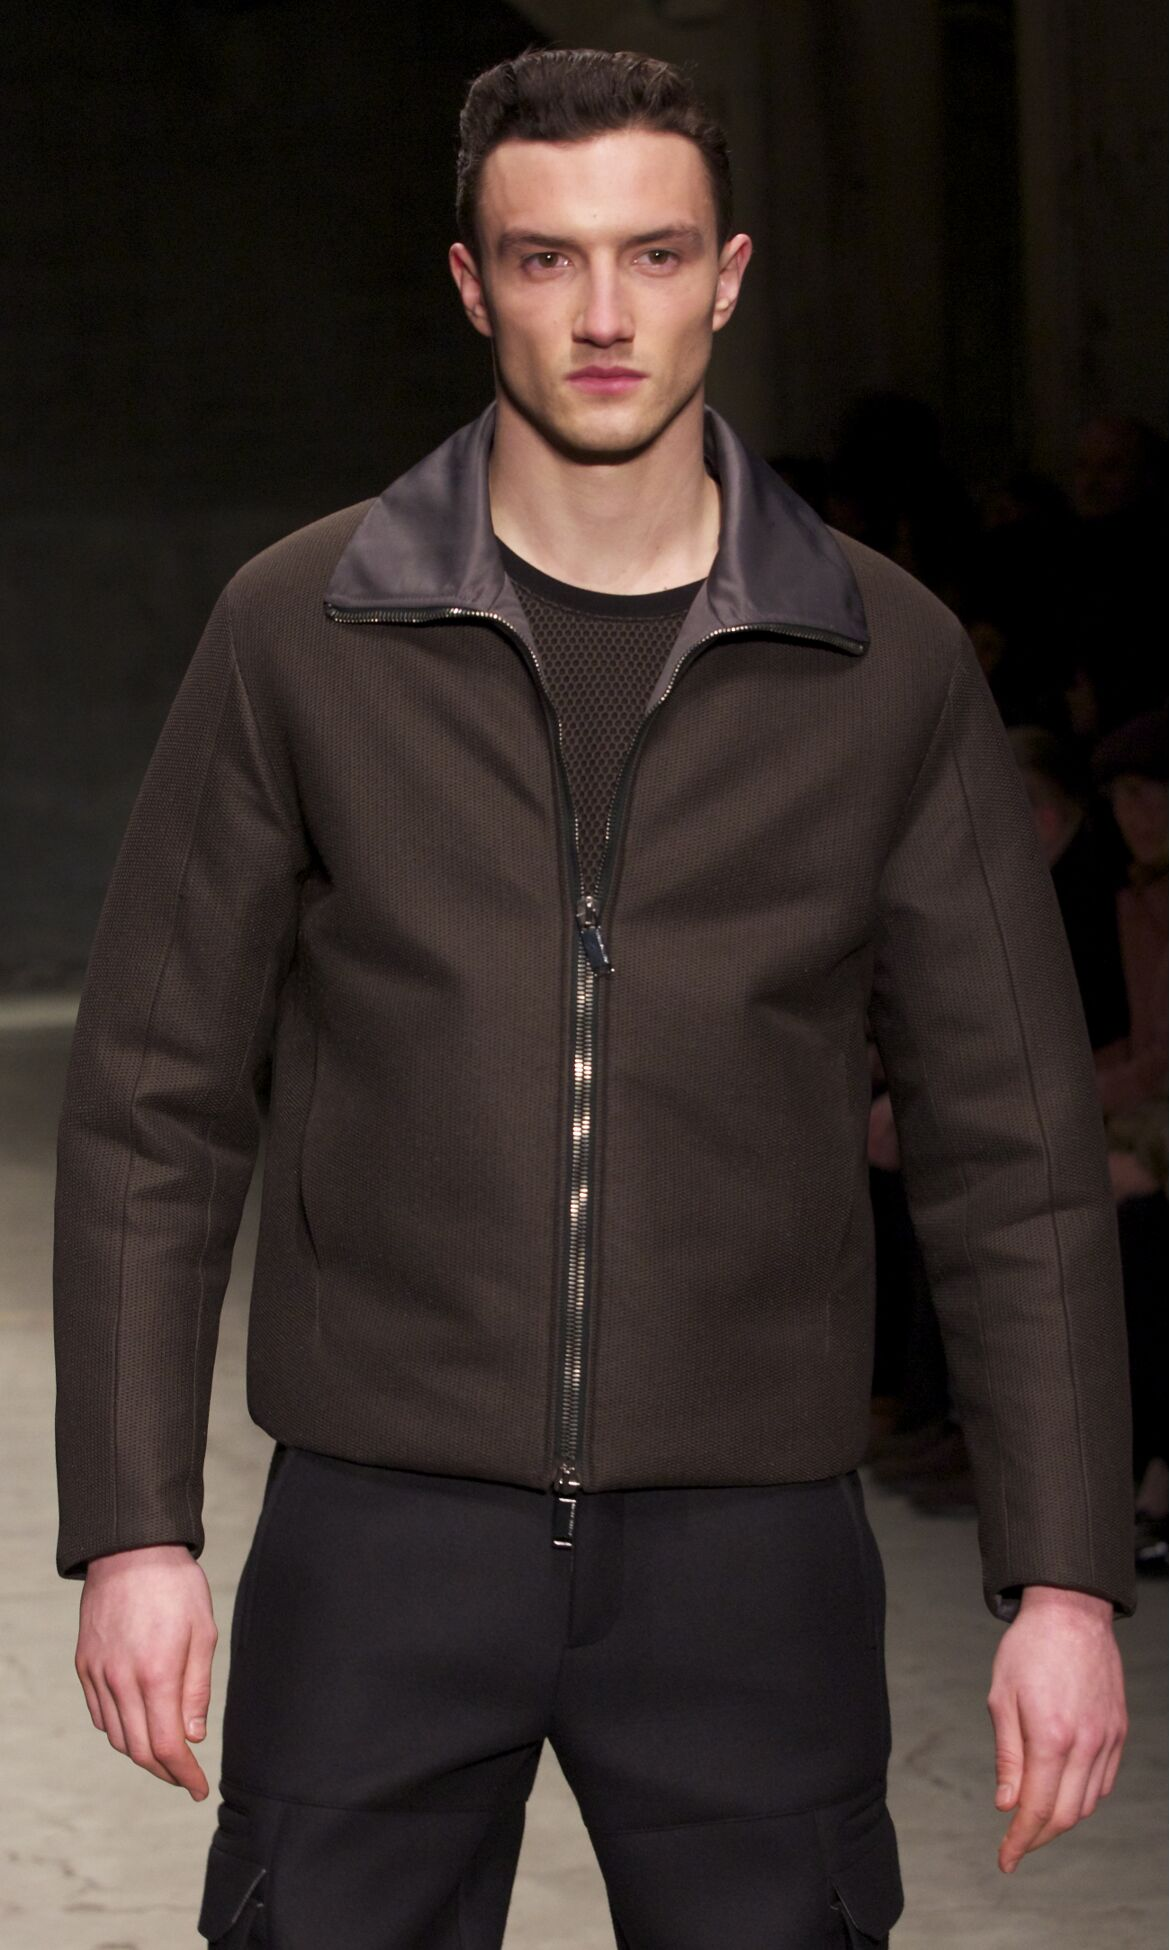 Catwalk Joseph Abboud Fall Winter 2013 14 Men Collection Pitti Uomo